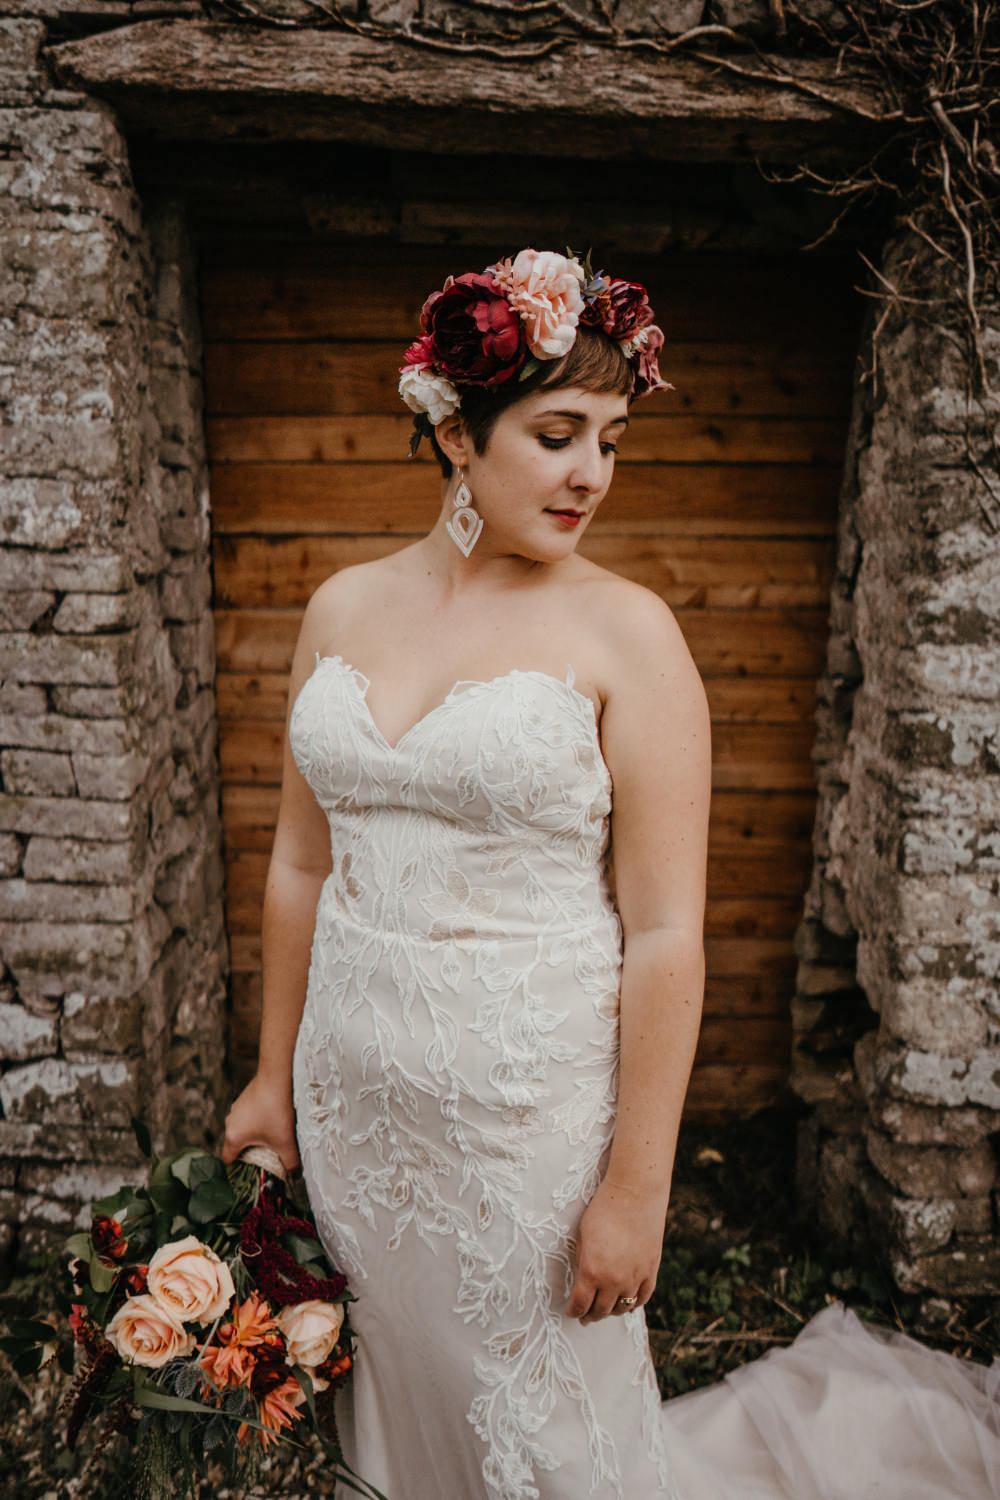 Bride Bridal Hair Make Up Dress Gown Strapless Lace Flower Crown Literary Wedding Naomi Jane Photography